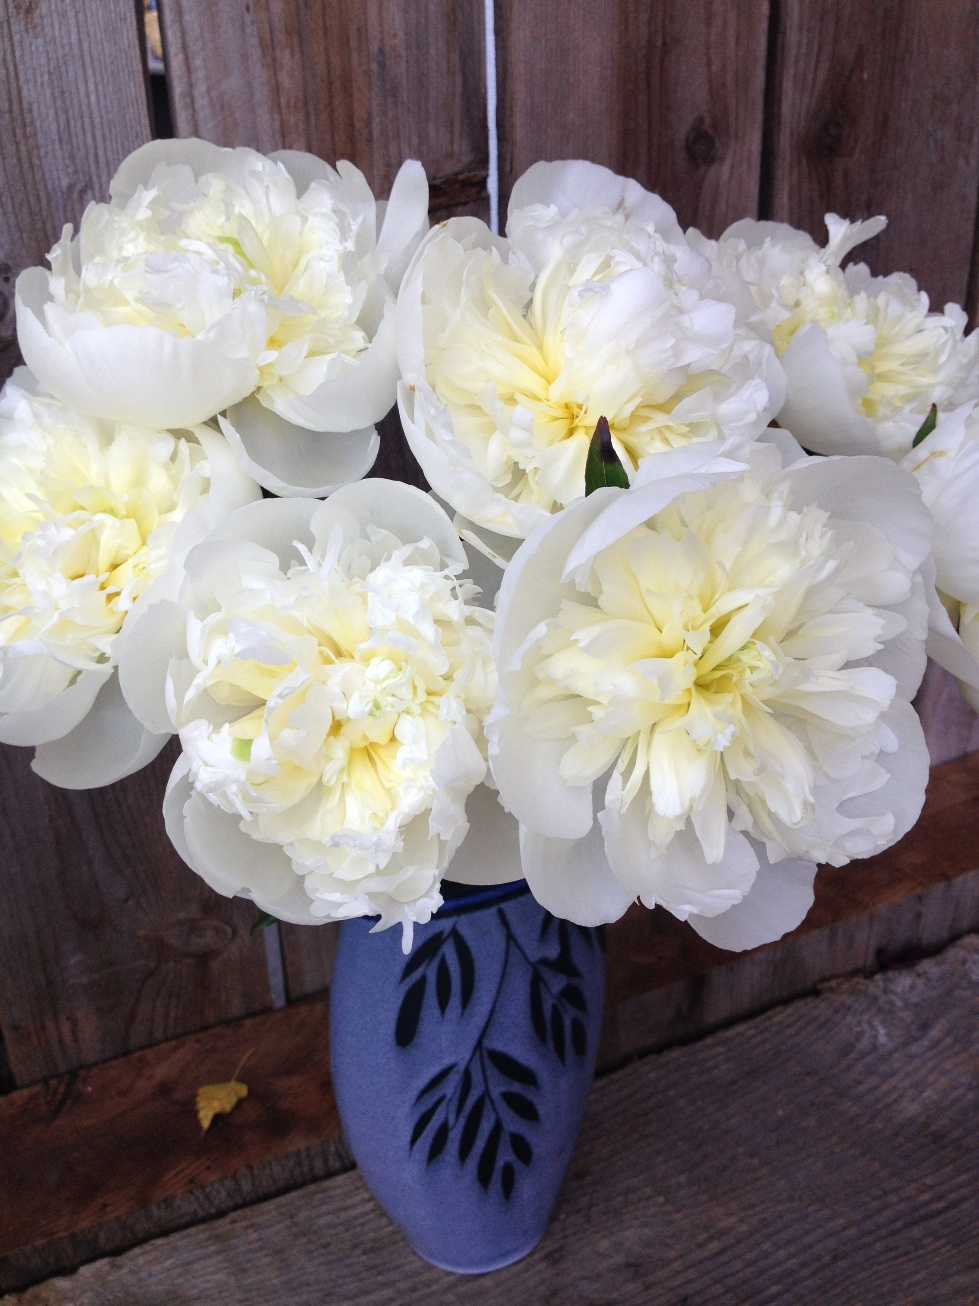 Peoniesoniesonies flyboy naturals llc we have 6000 peony bushes that produce many gorgeous bloomswe offer them as fresh cut flowers and mightylinksfo